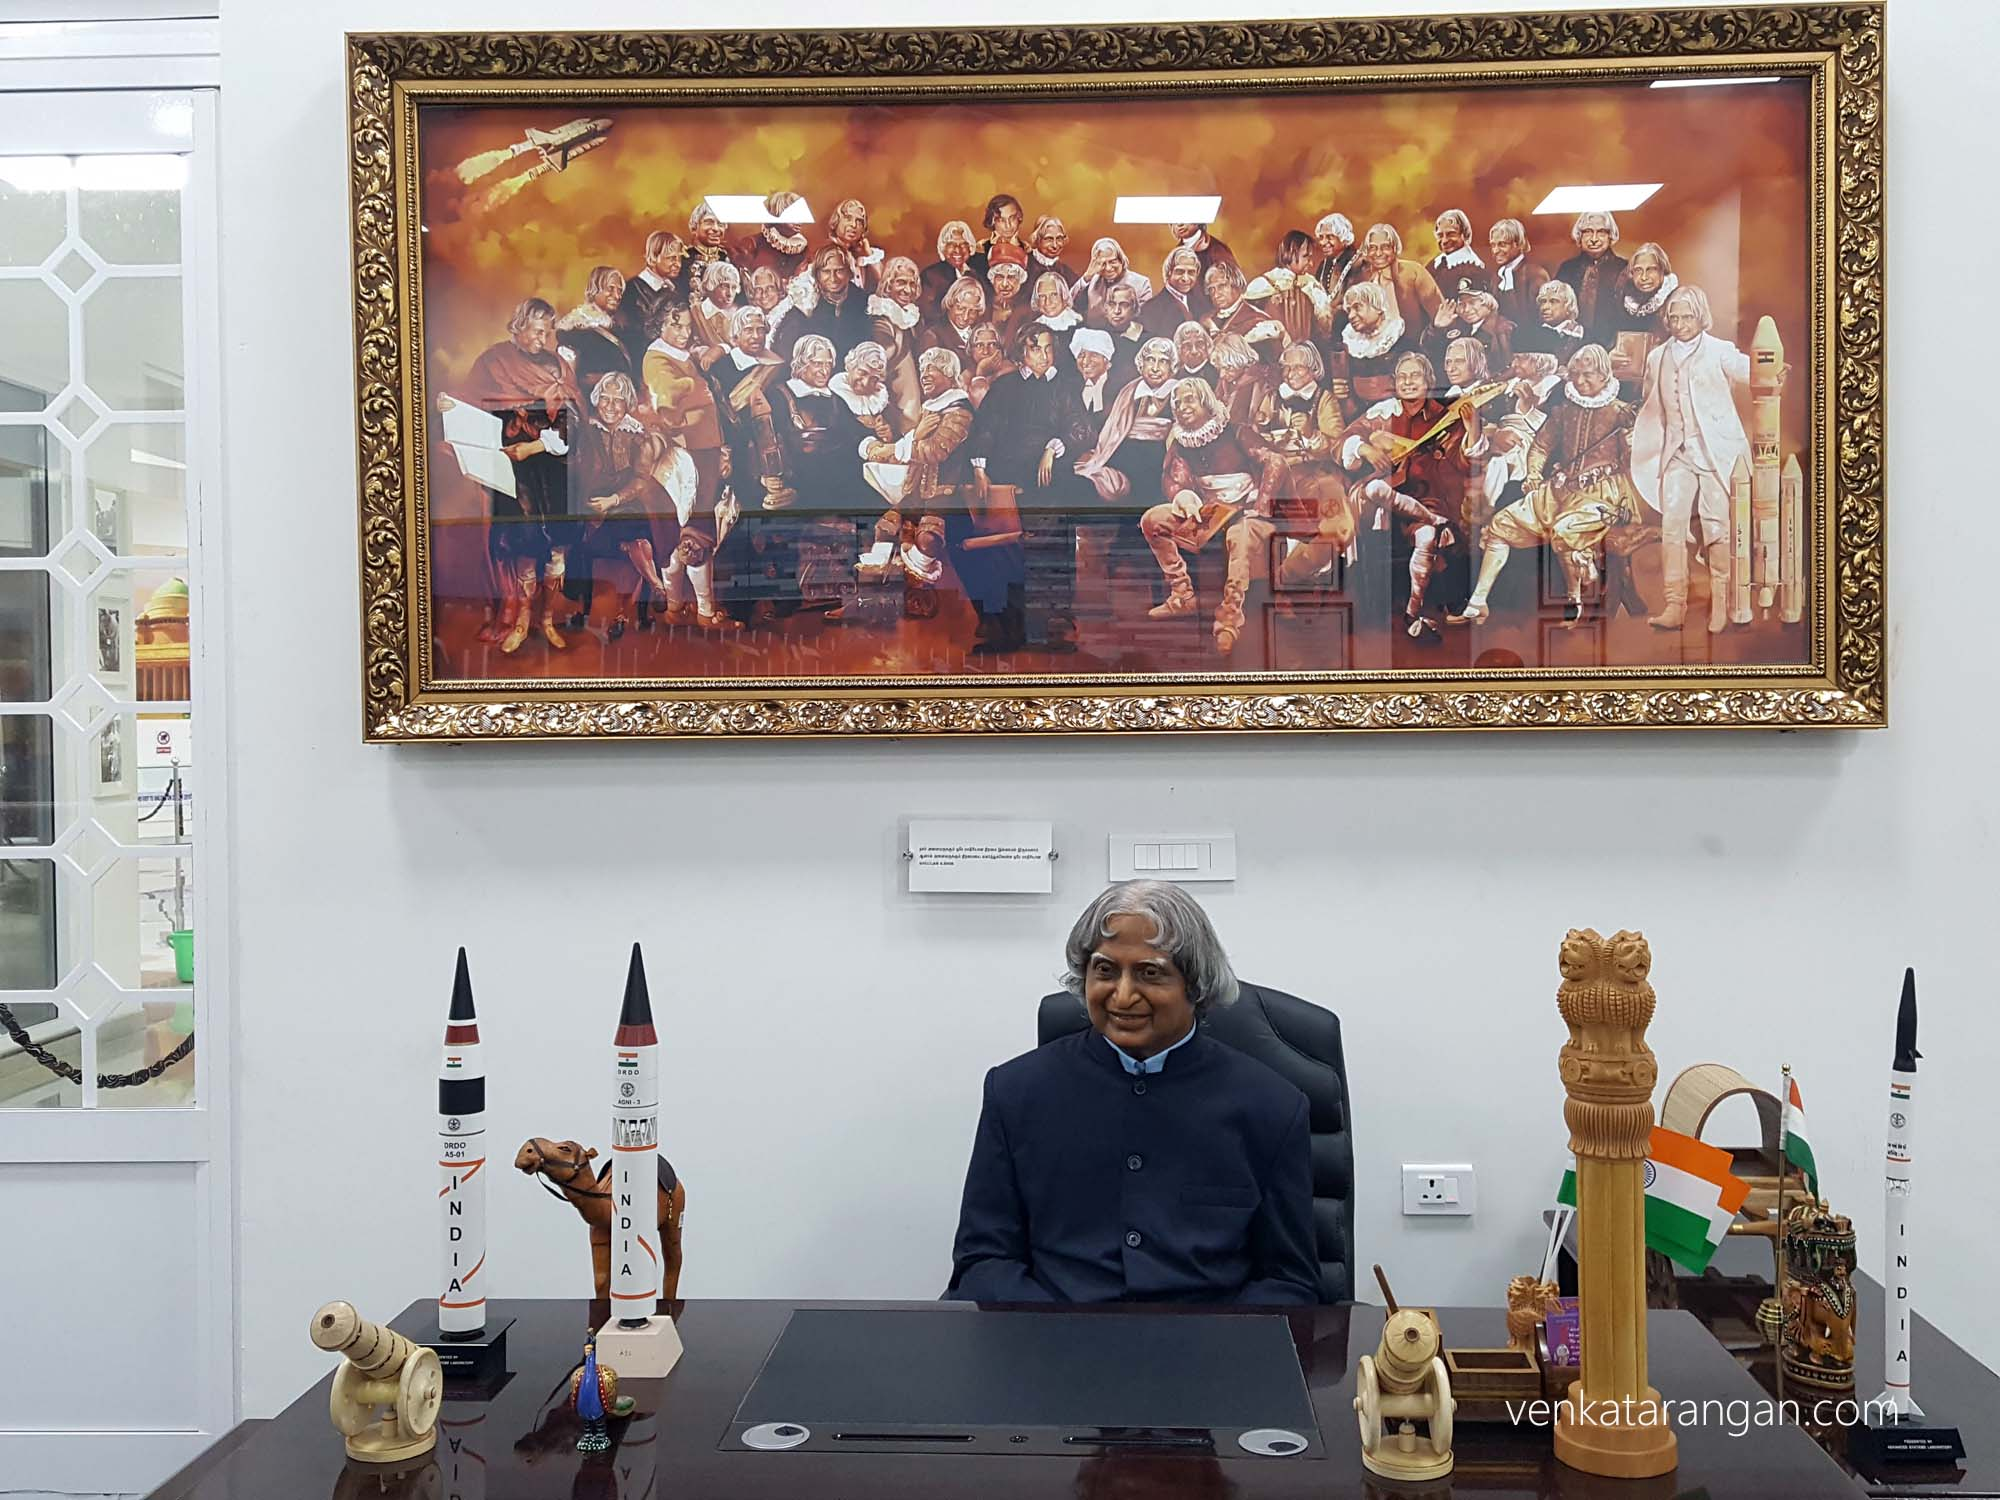 Replica of his table at Rashtrapathi Bhavan